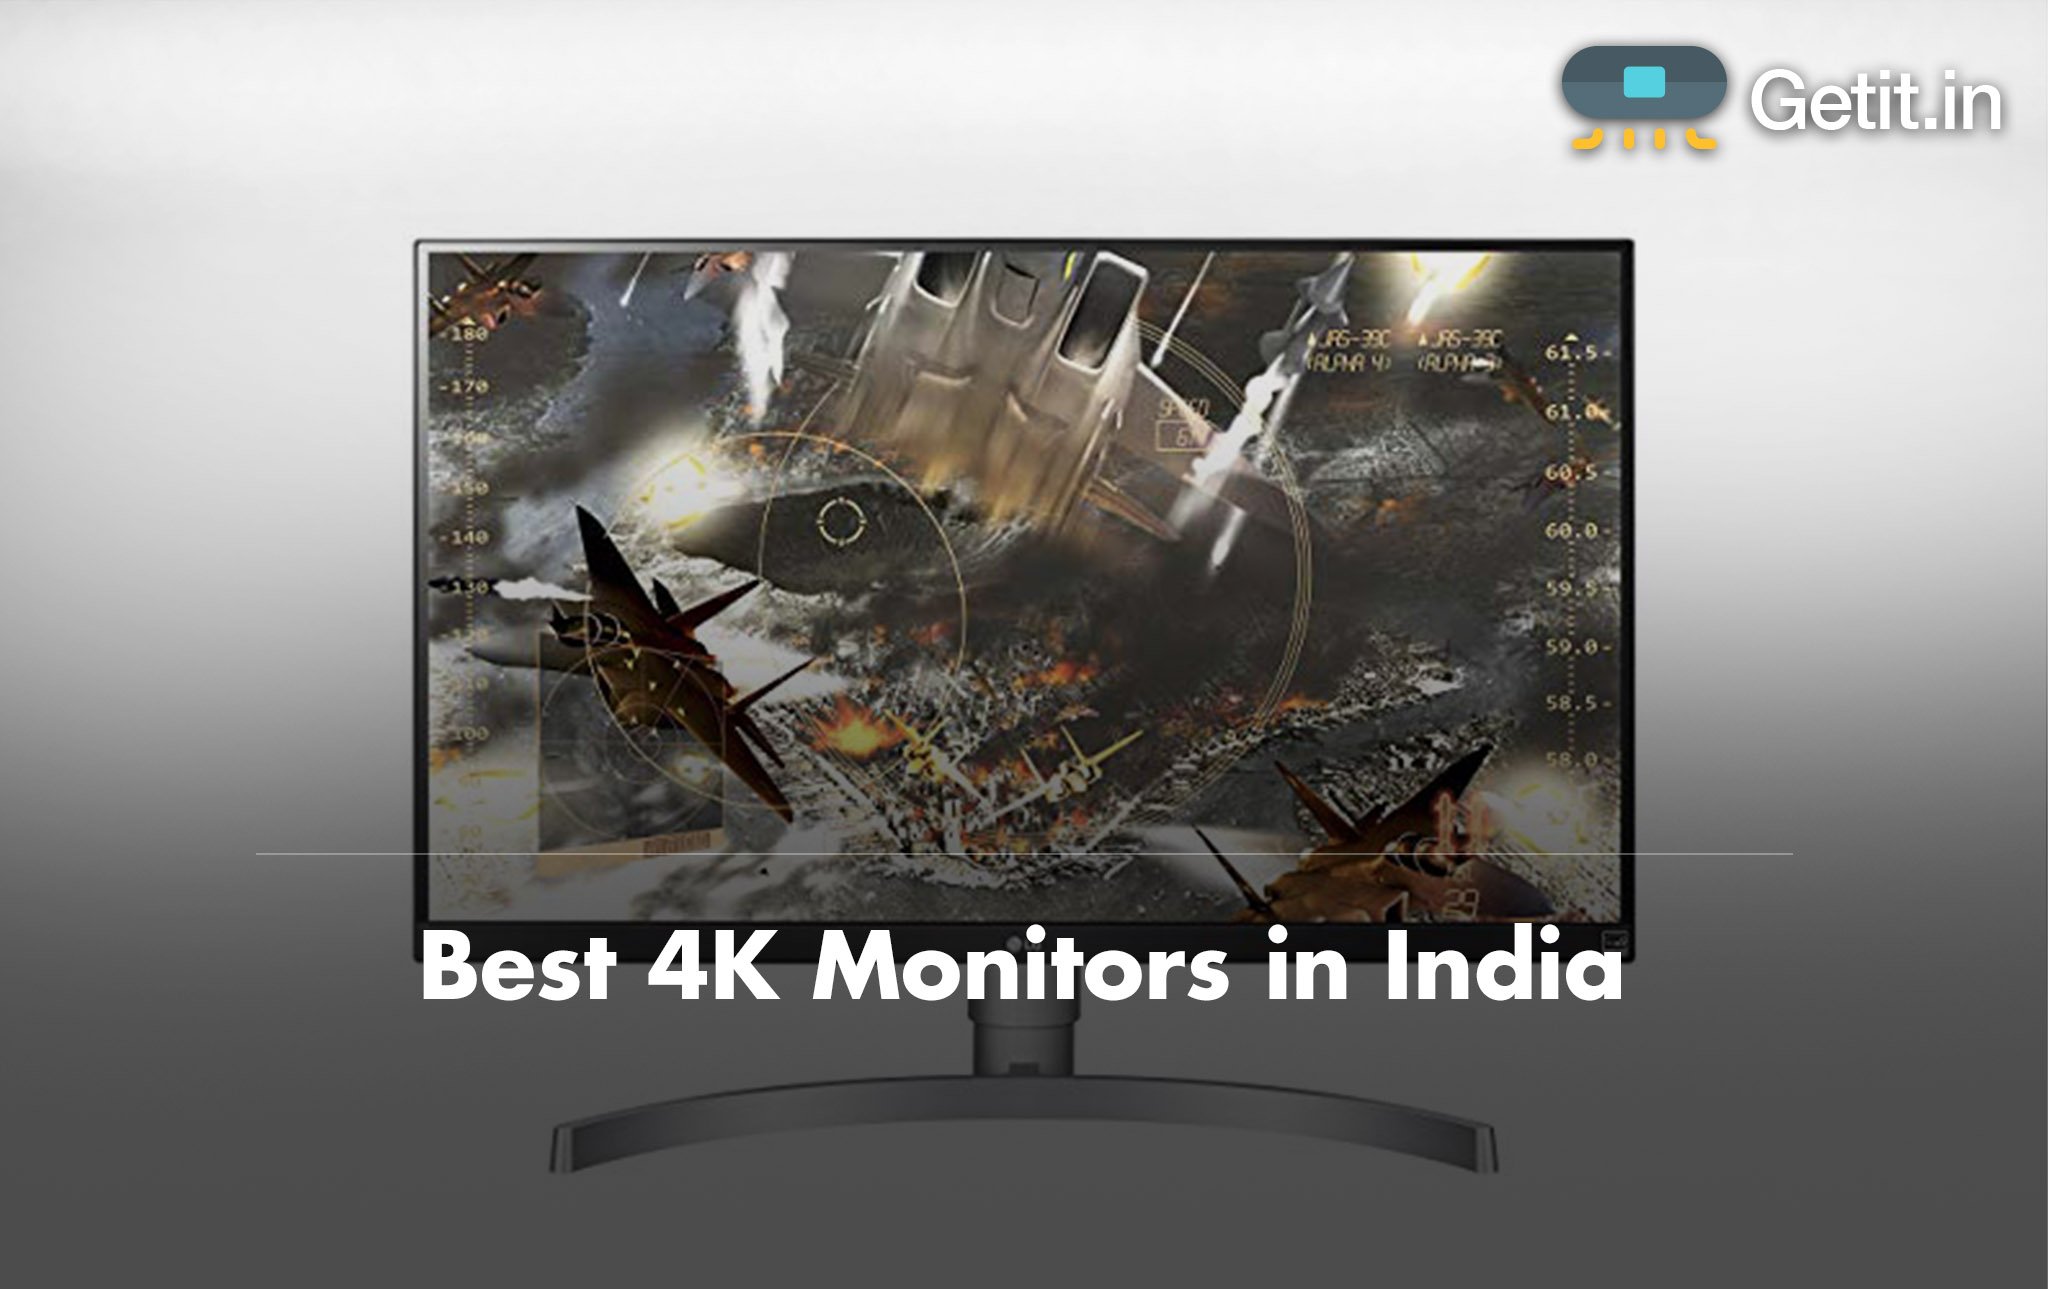 Best 4K Monitors in India